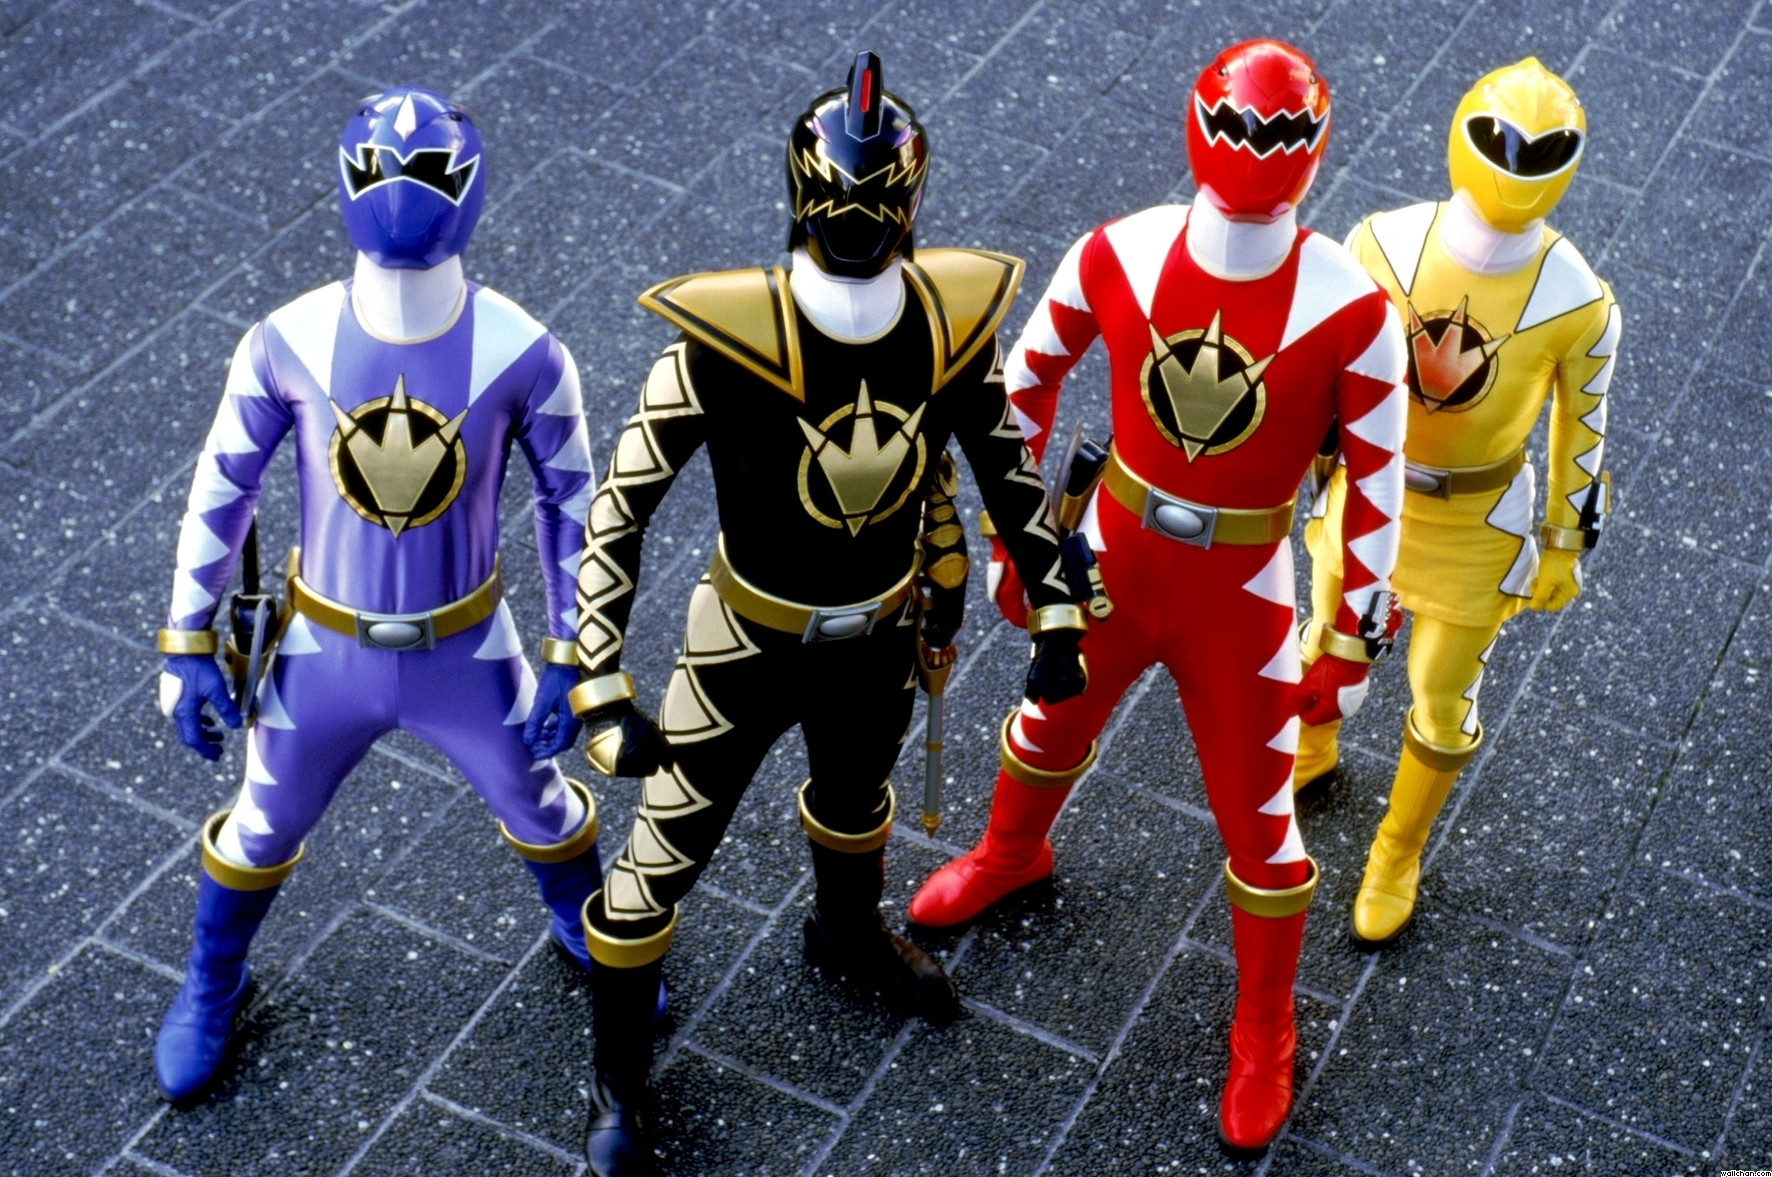 2004s dino thunder was the best power rangers reboot inverse